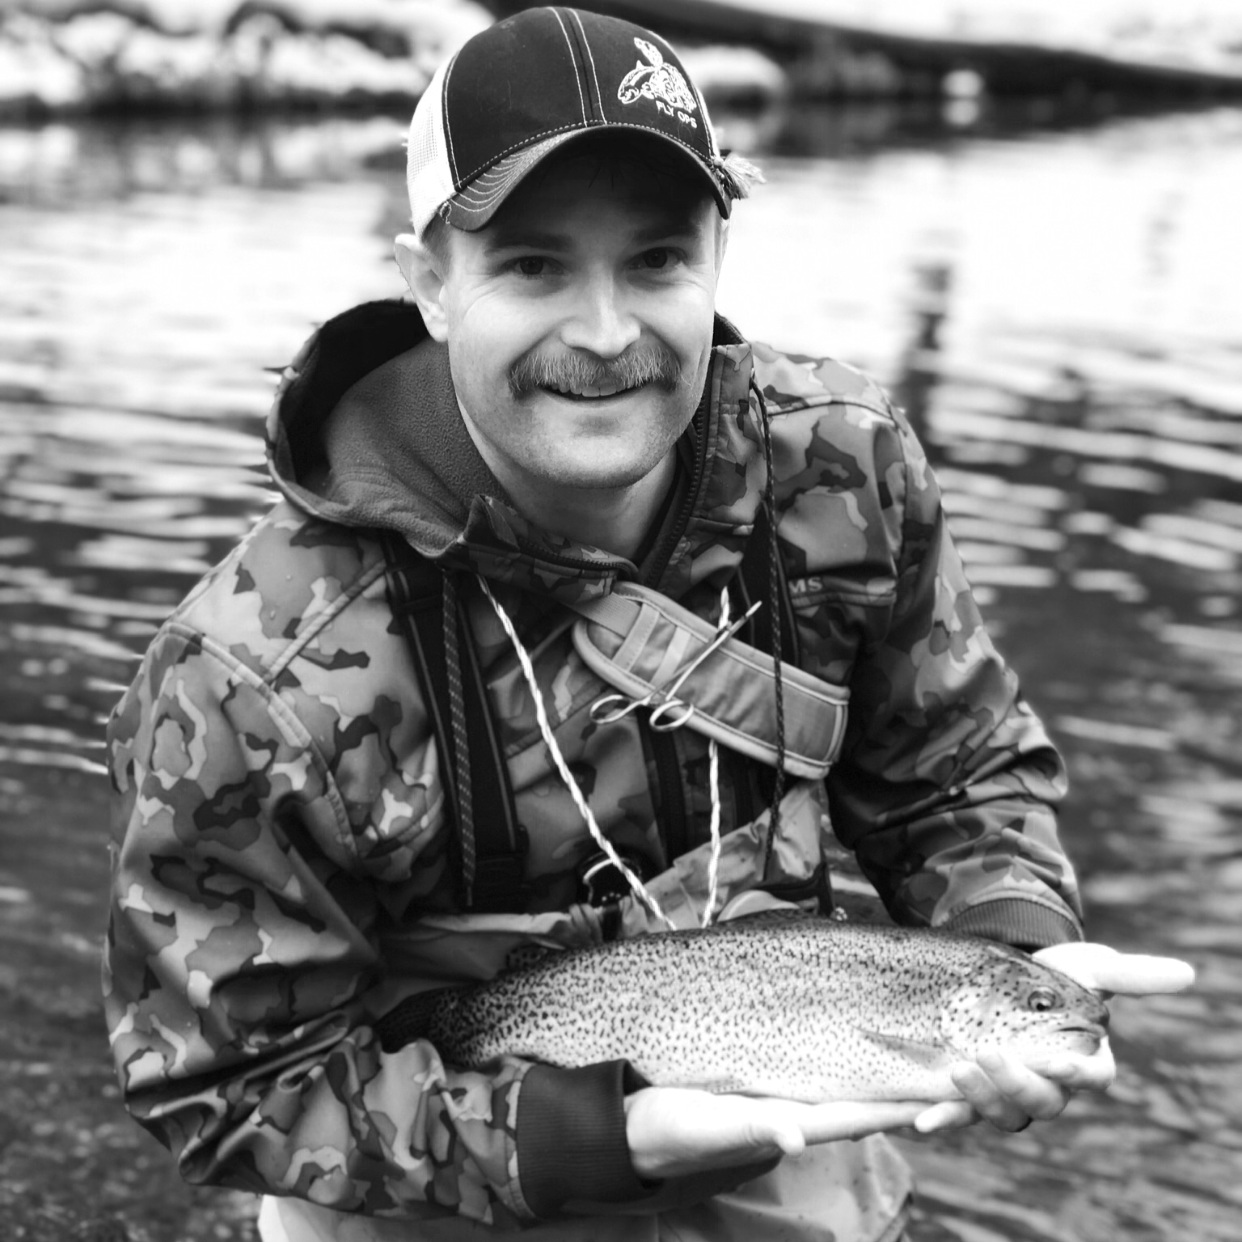 Josh Spano  I've lived in the Pacific Northwest all of my life. I started fly fishing at 10 with my grandfather and have loved it ever since. I'm a former Combat Medic and currently a Police Detective. If I'm not working, I'm constantly taking my kids, my wife, or other people out onto the many waters we have here in Bend, Oregon. I have a heart for non-profit work and enjoy getting police, fire, and veterans out to fish as it is my stress release! Through a group started by a bunch of us at work, @tightbluelines, we are able to accomplish this goal. If it's too cold to fish (which it never is) I'm out in the woods chasing deer, elk, totes, or cats!    Email: rideredjs@gmail.com   Instagram: @oregondonorjs   Guide instagram:  @tightbluelines